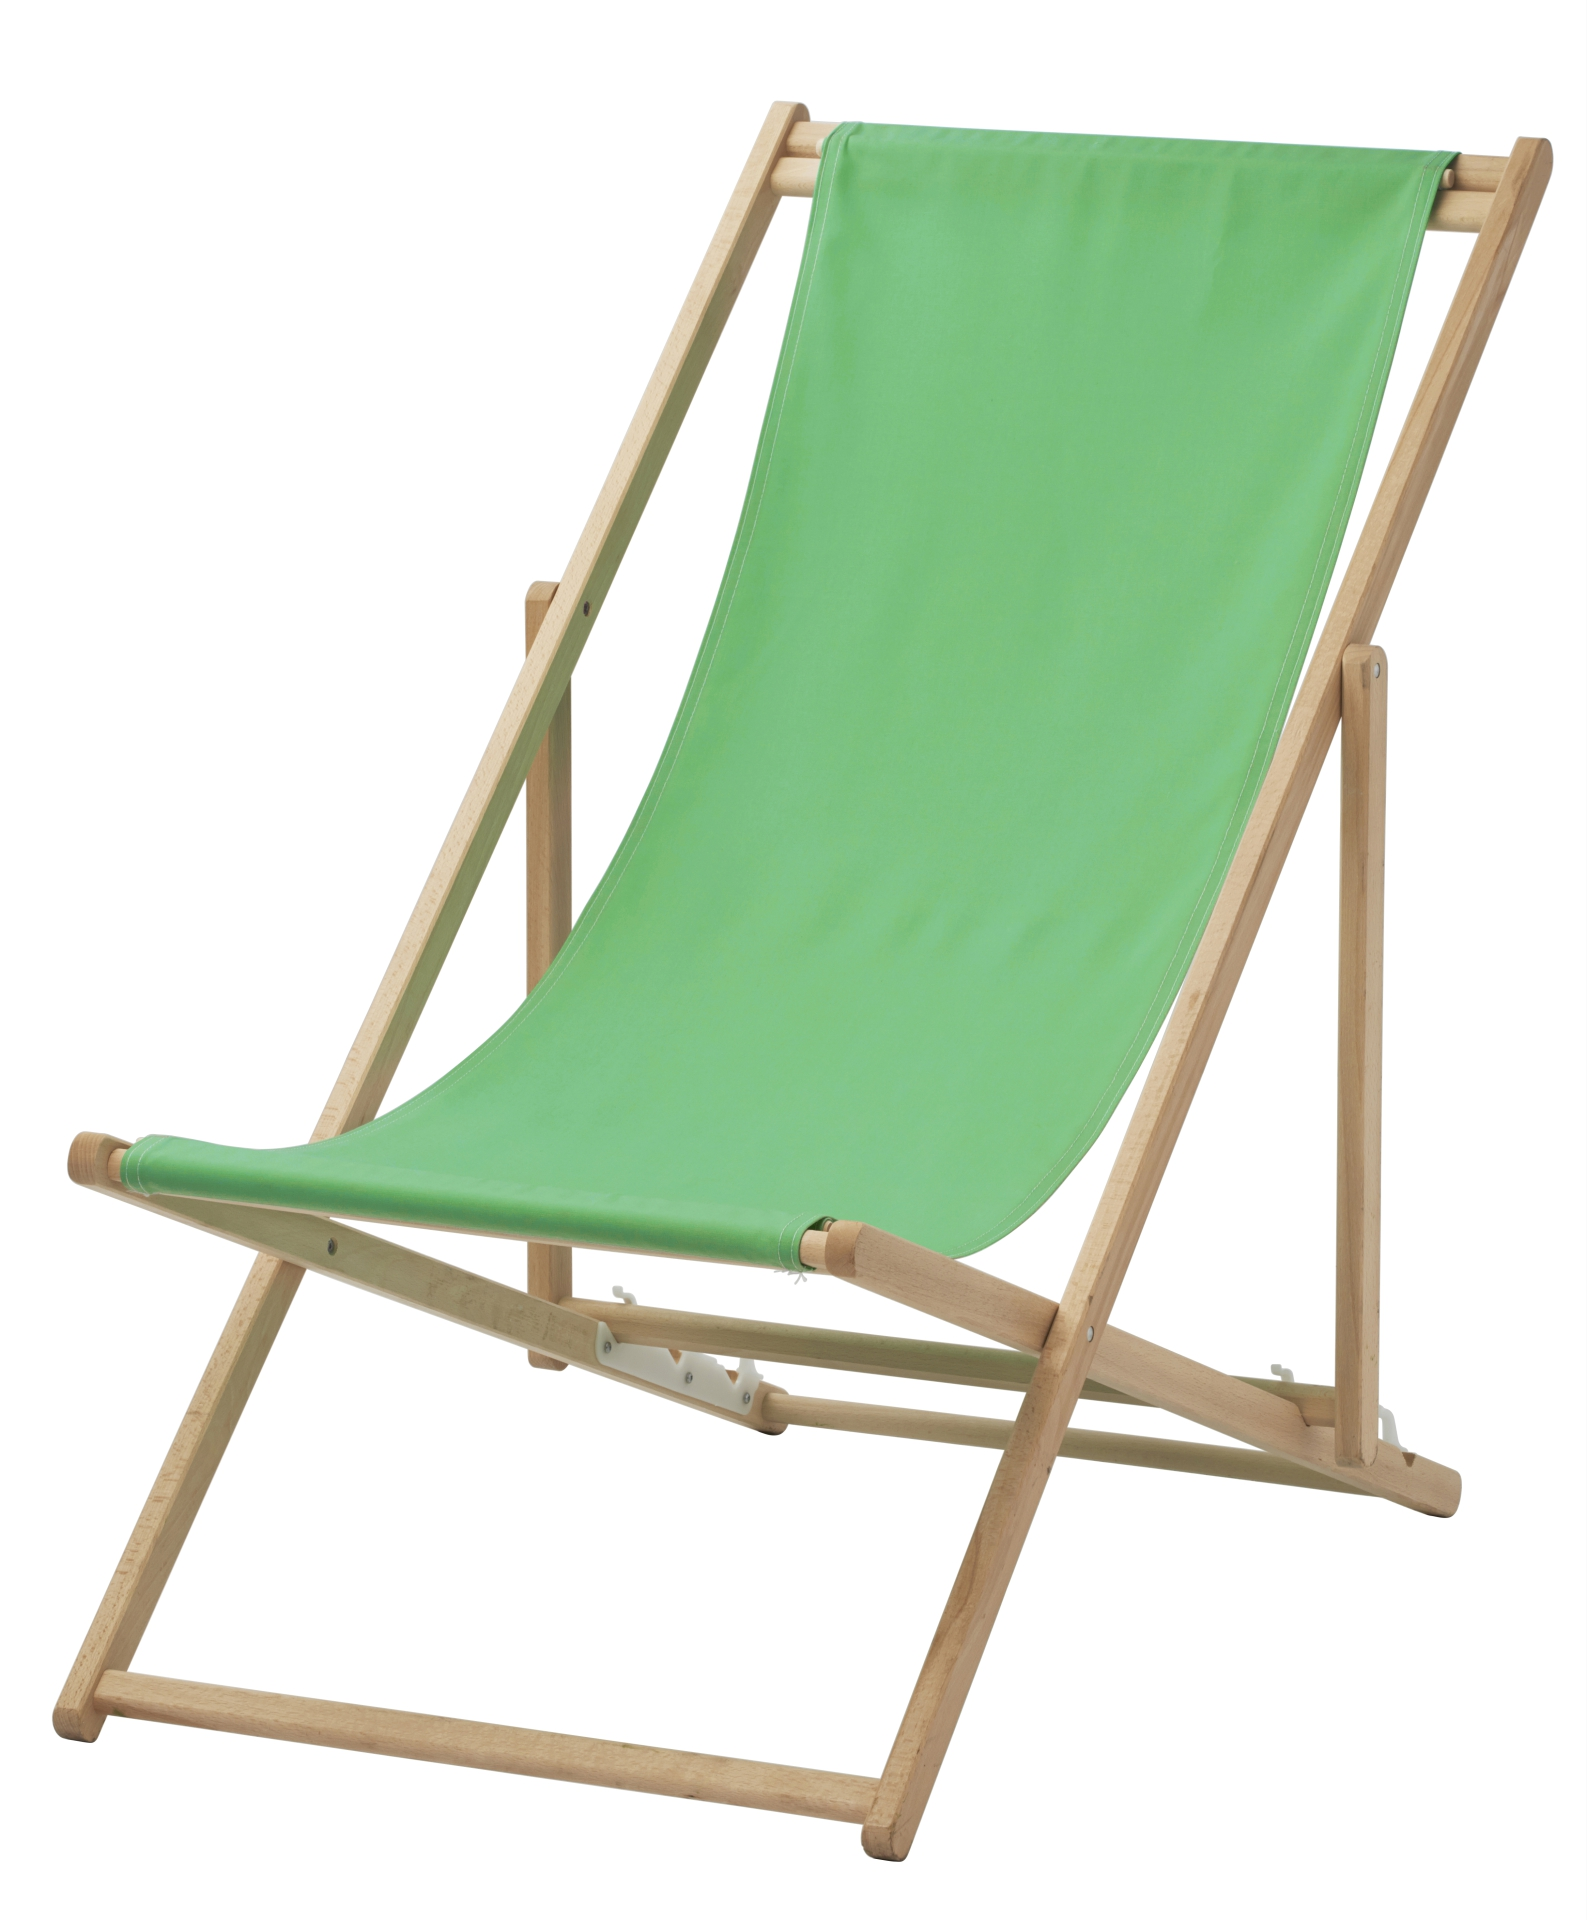 ikea beach chair covers dunelm mill recalls chairs due to fall and fingertip